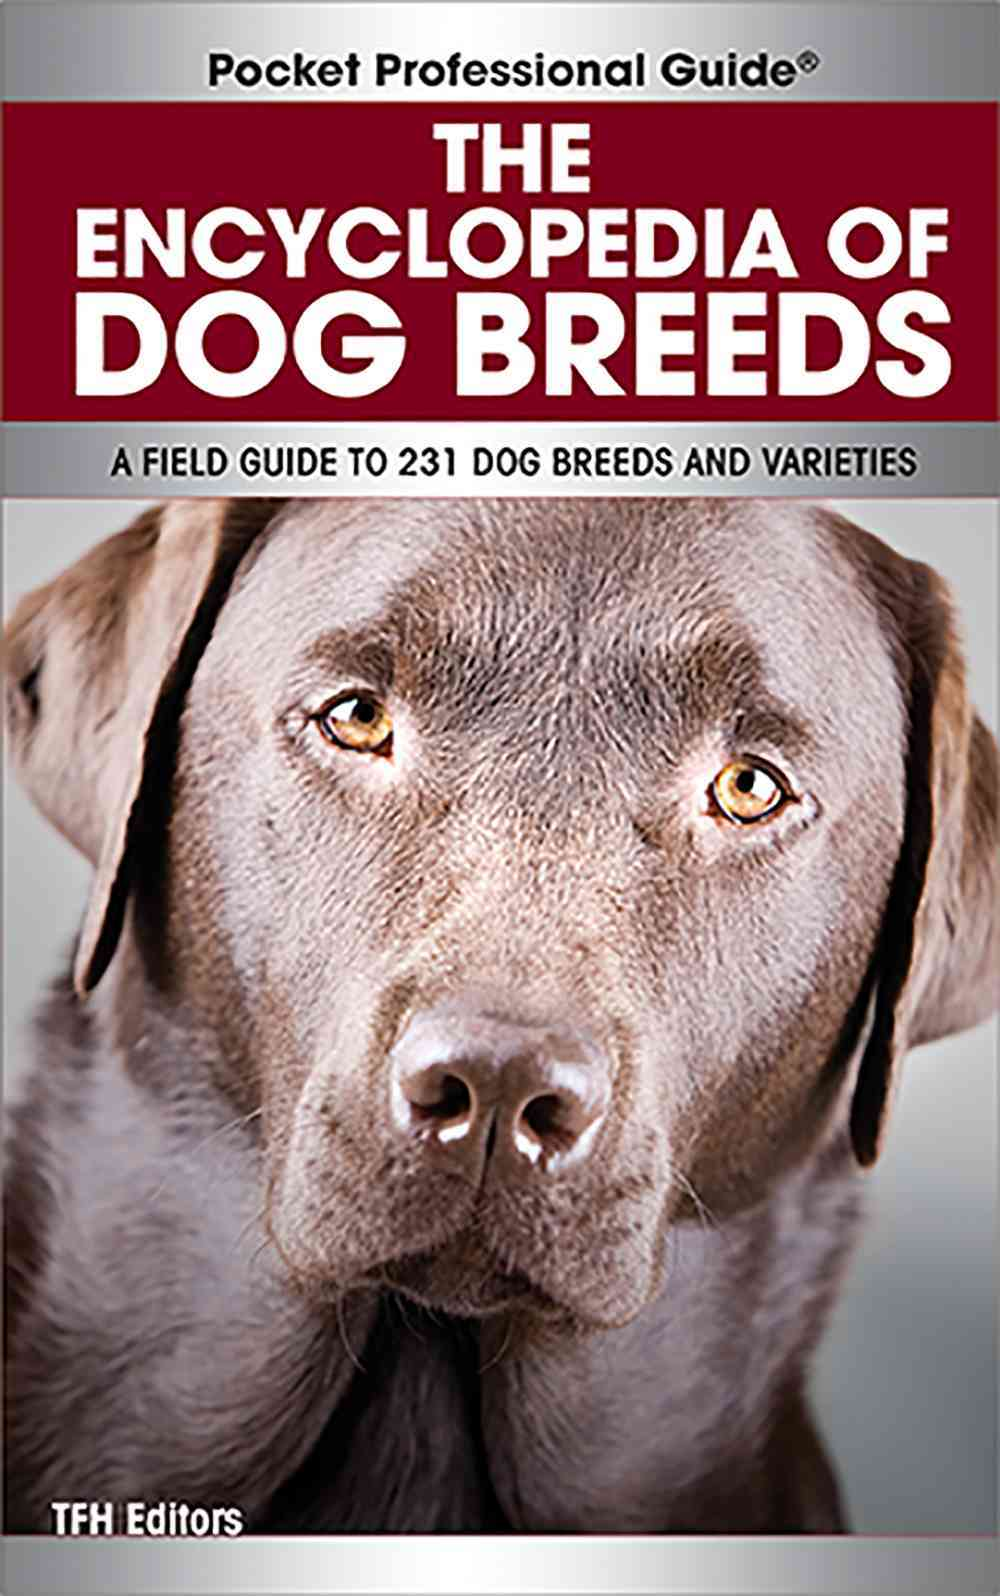 The Encyclopedia of Dog Breeds: A Field Guide to 231 Dog Breeds and Varieties (Paperback)